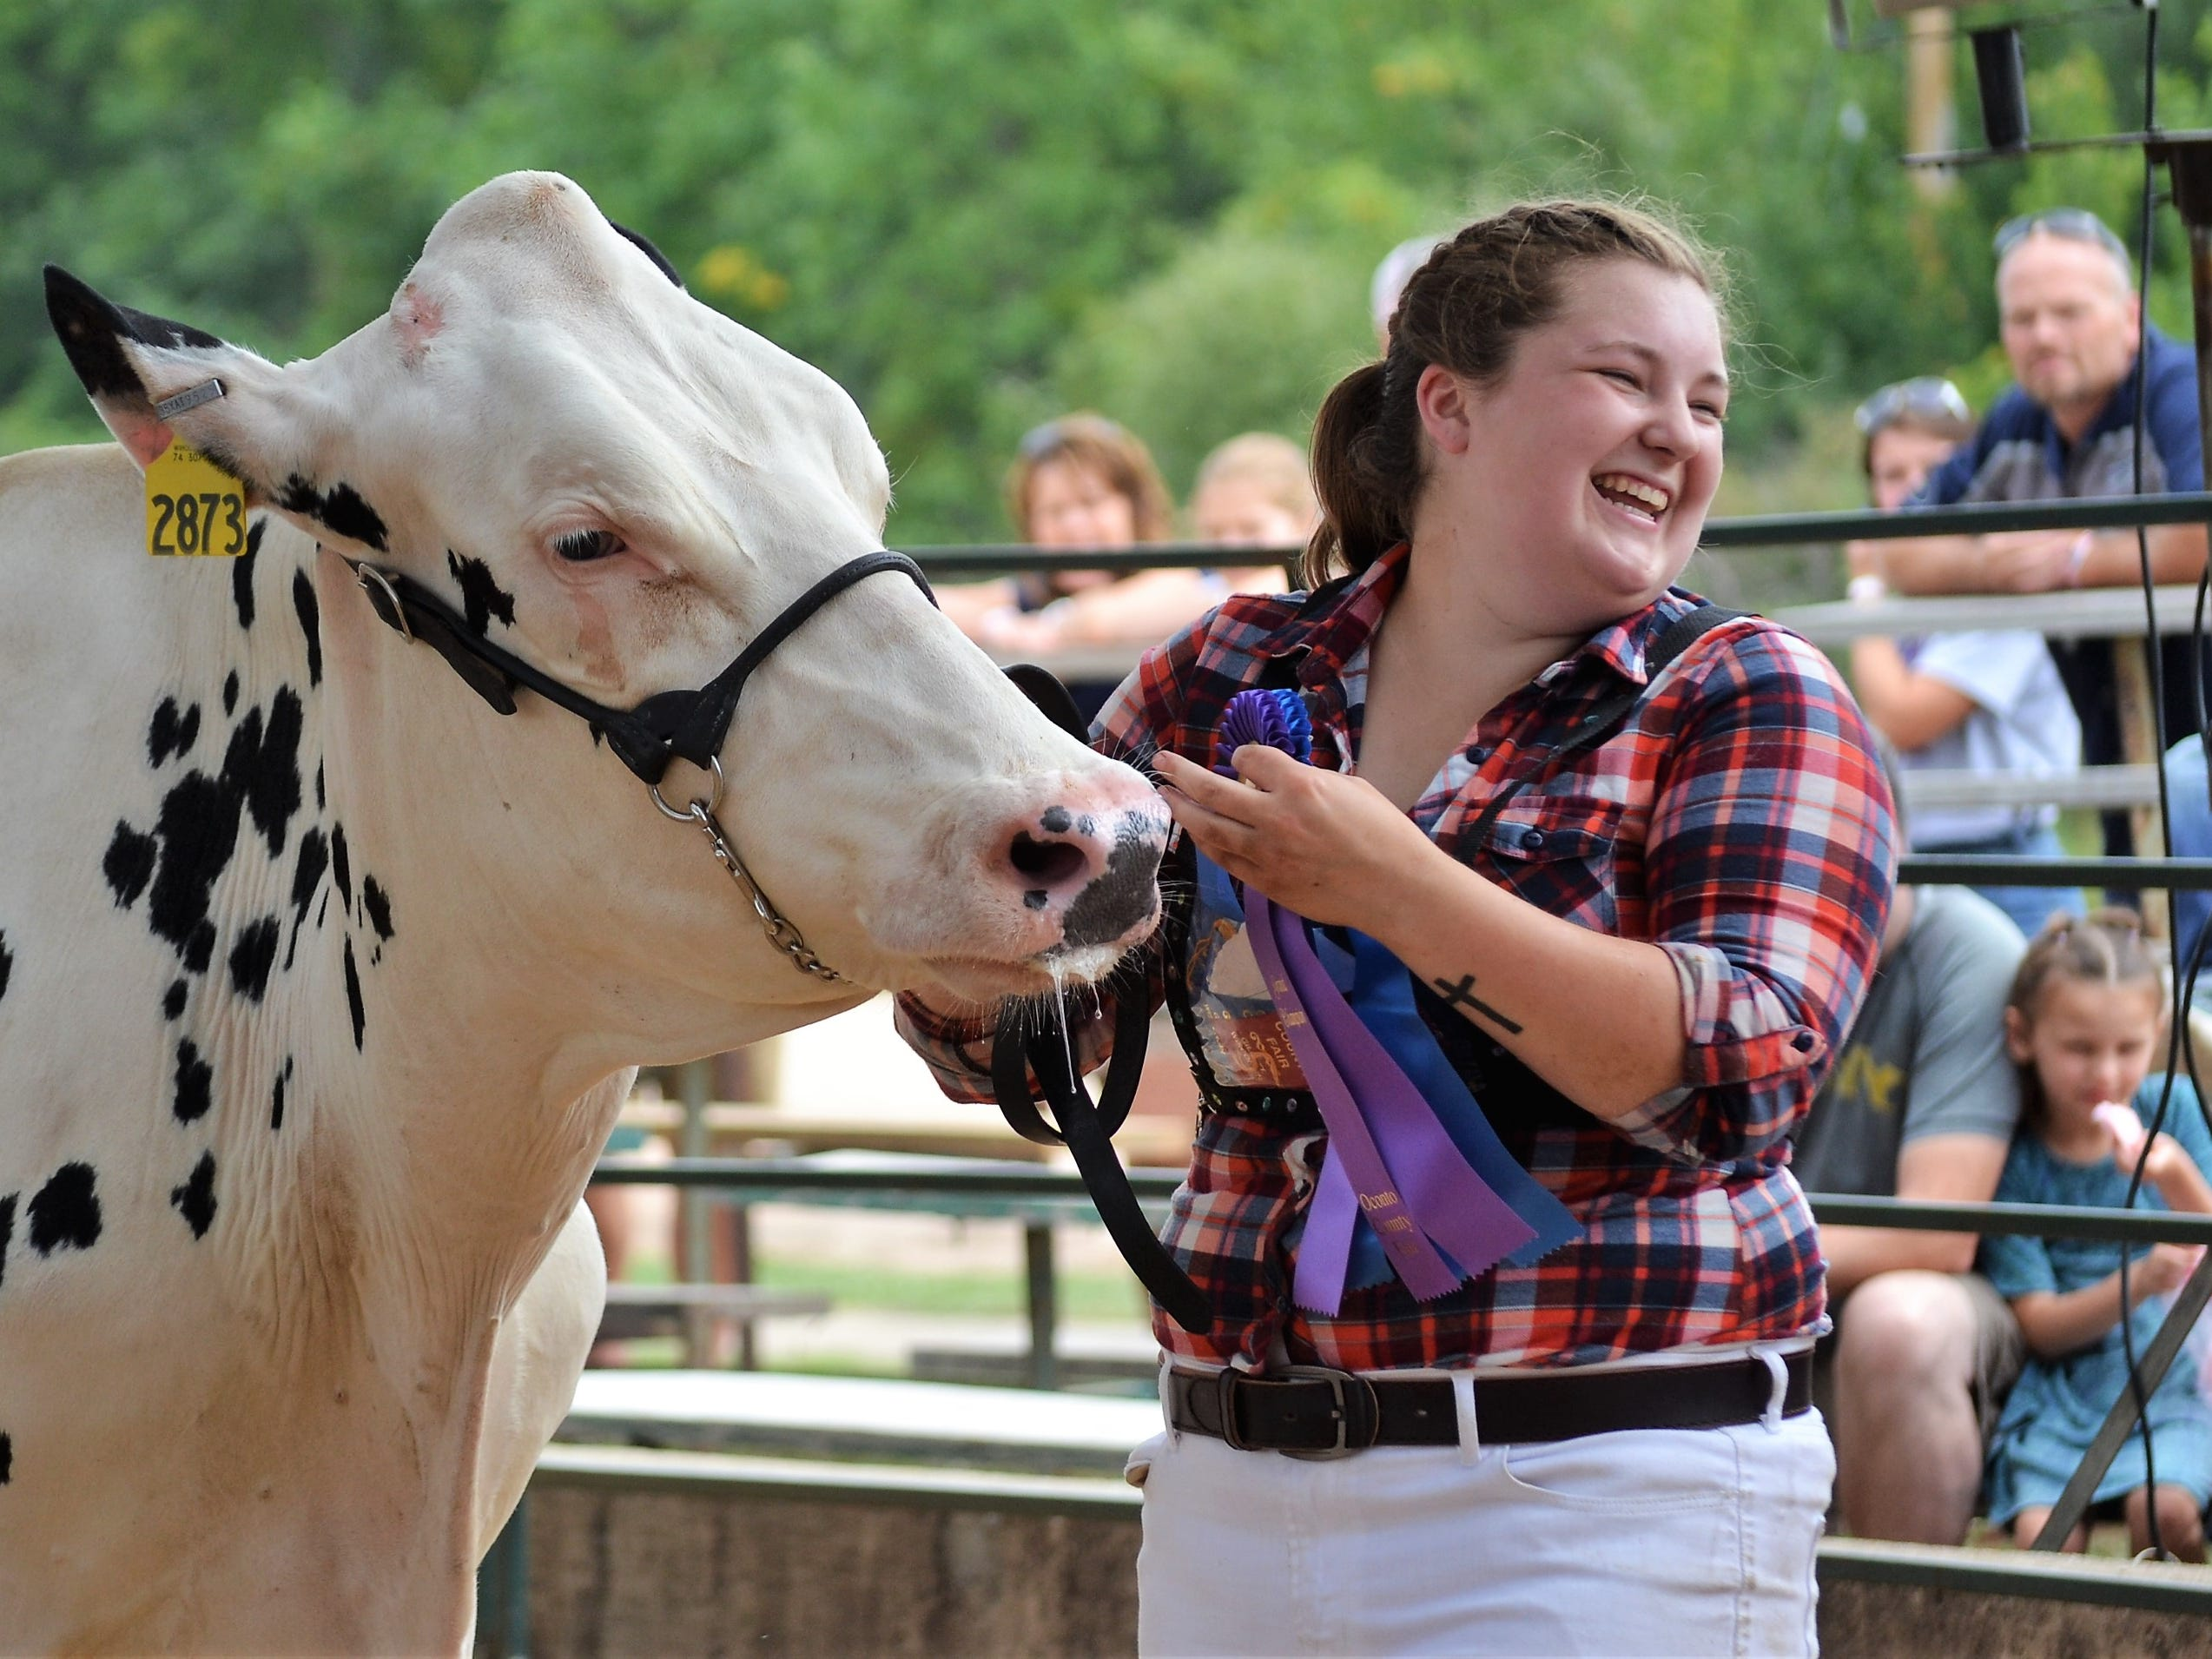 Alexandra Raddatz of Christy Brook 4-H Club smiles after winning both overall  Grand and Reserve Champion awards in the Junior Dairy Cattle Competition at the Oconto County Fair on Saturday, Aug. 18.